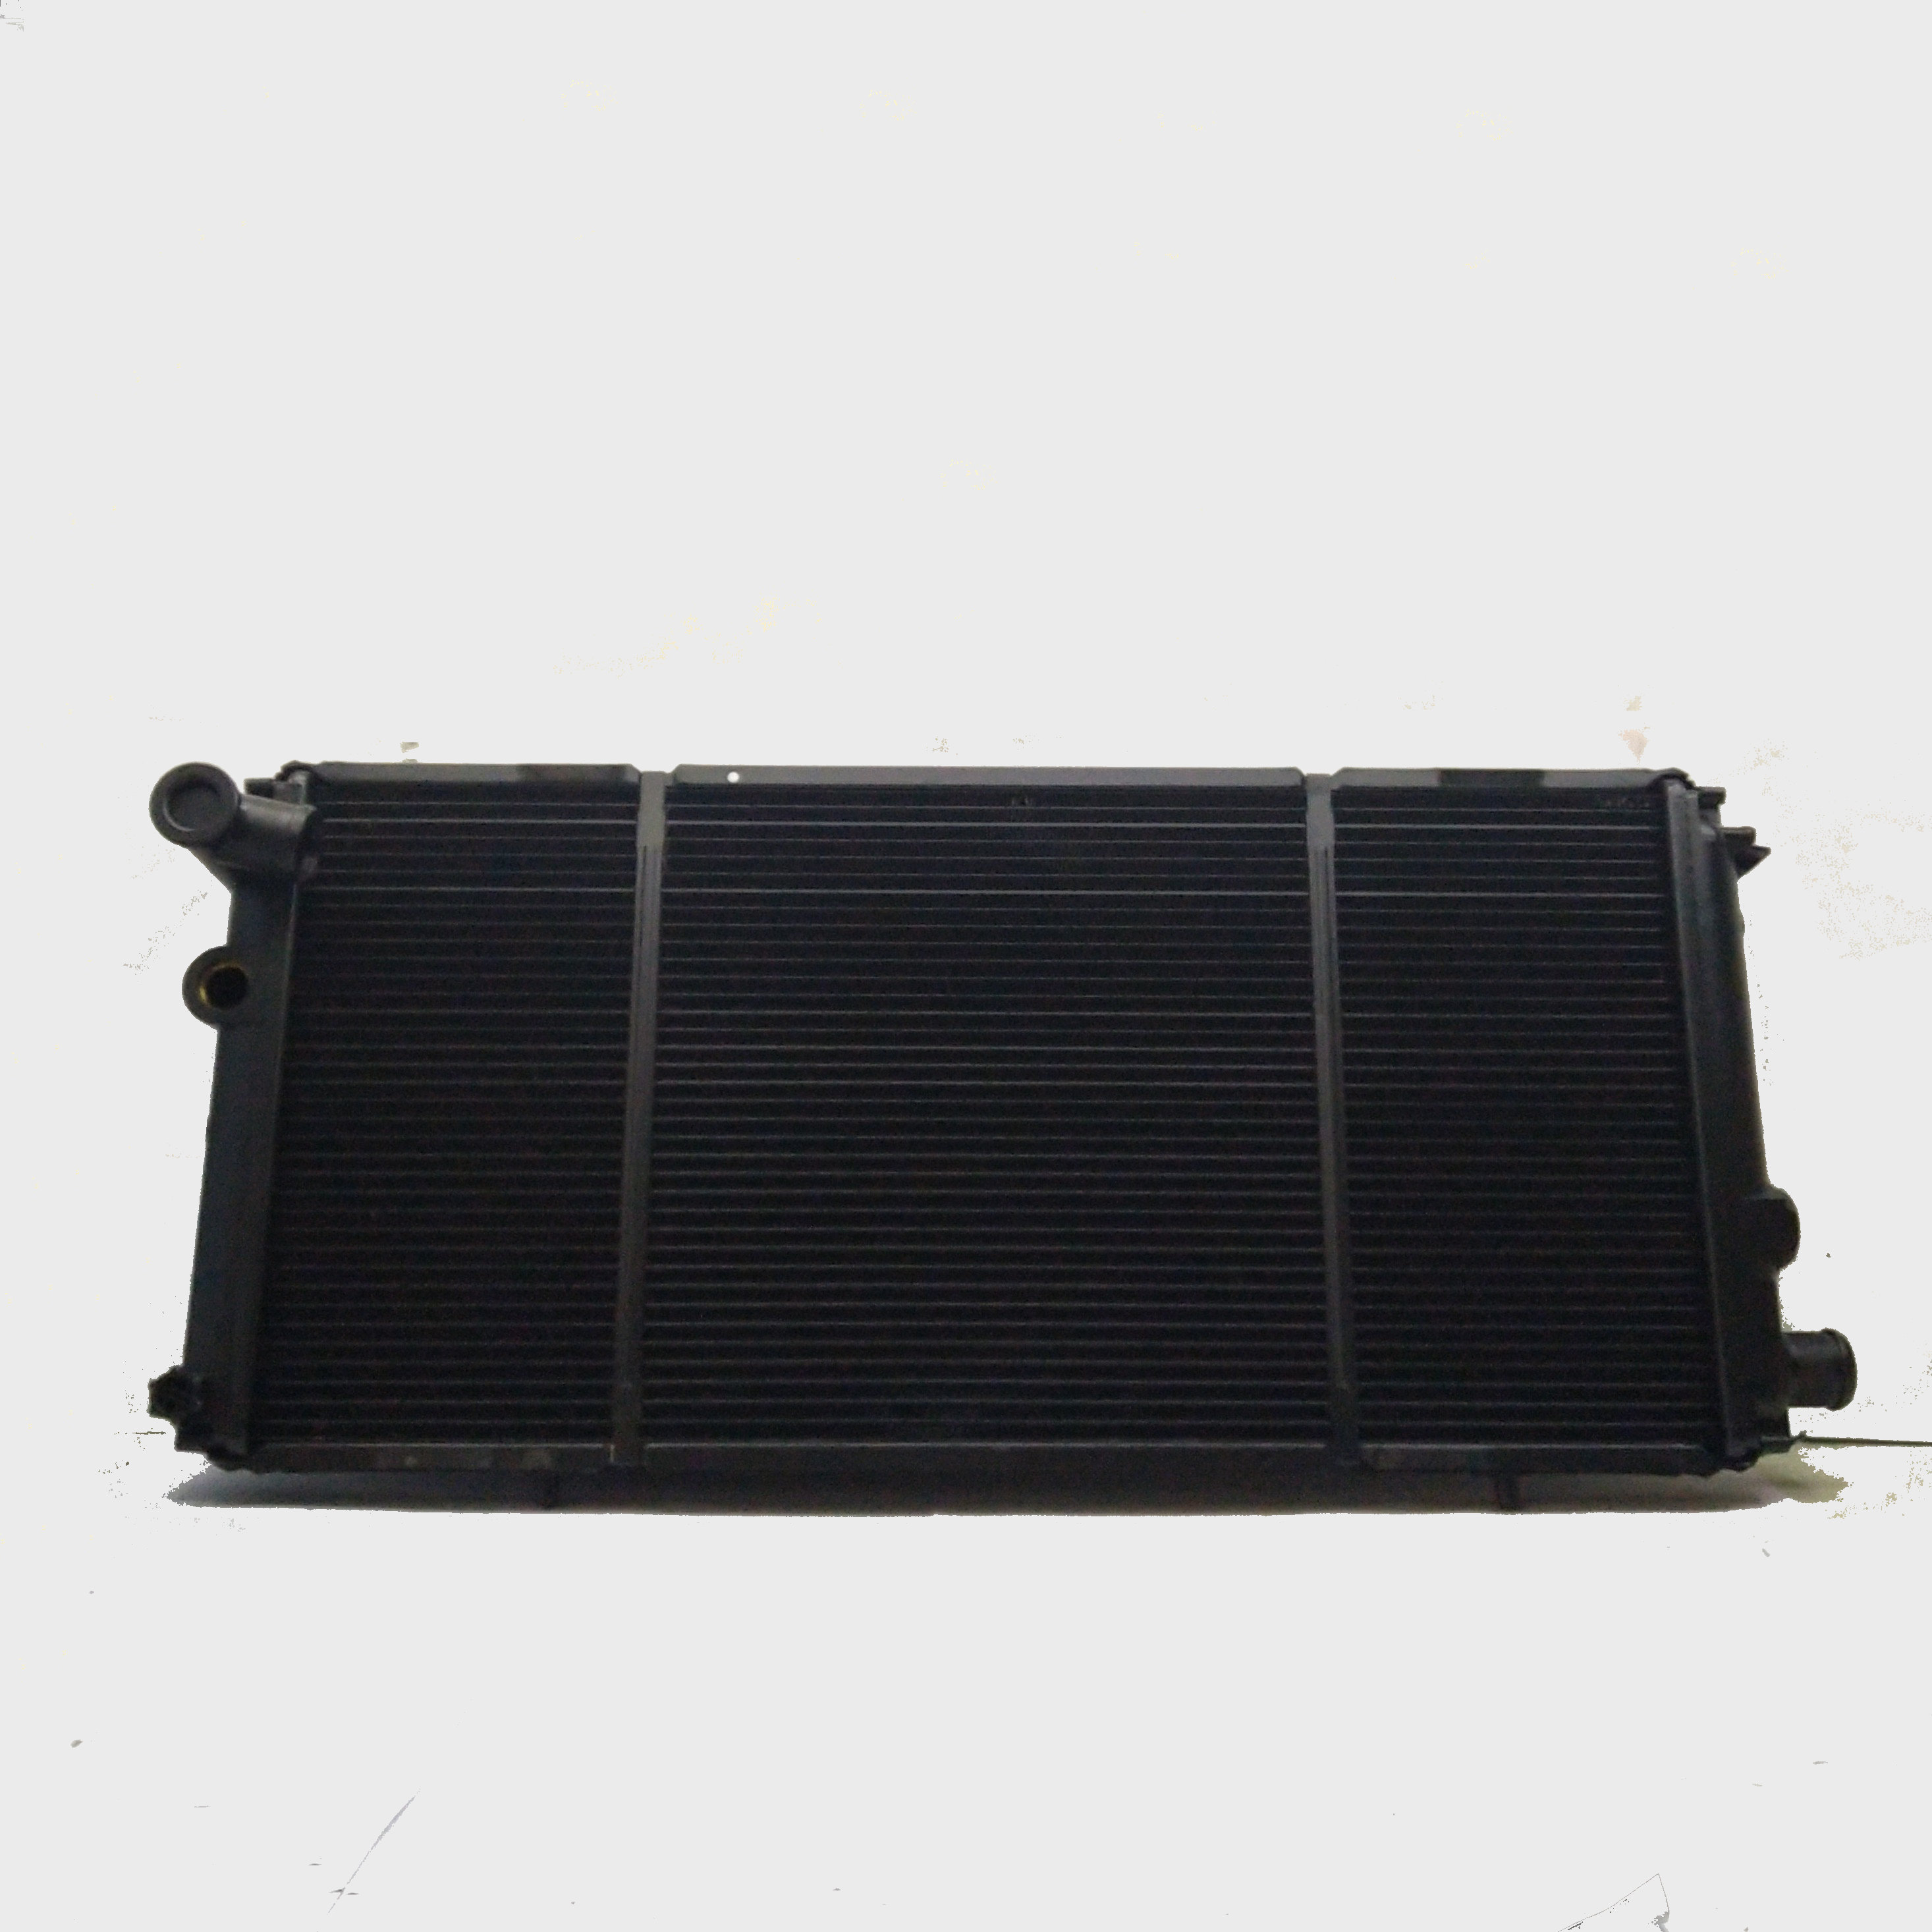 ENGINE COOLING RADIATOR PEUGEOT 205 FOR 1300K5